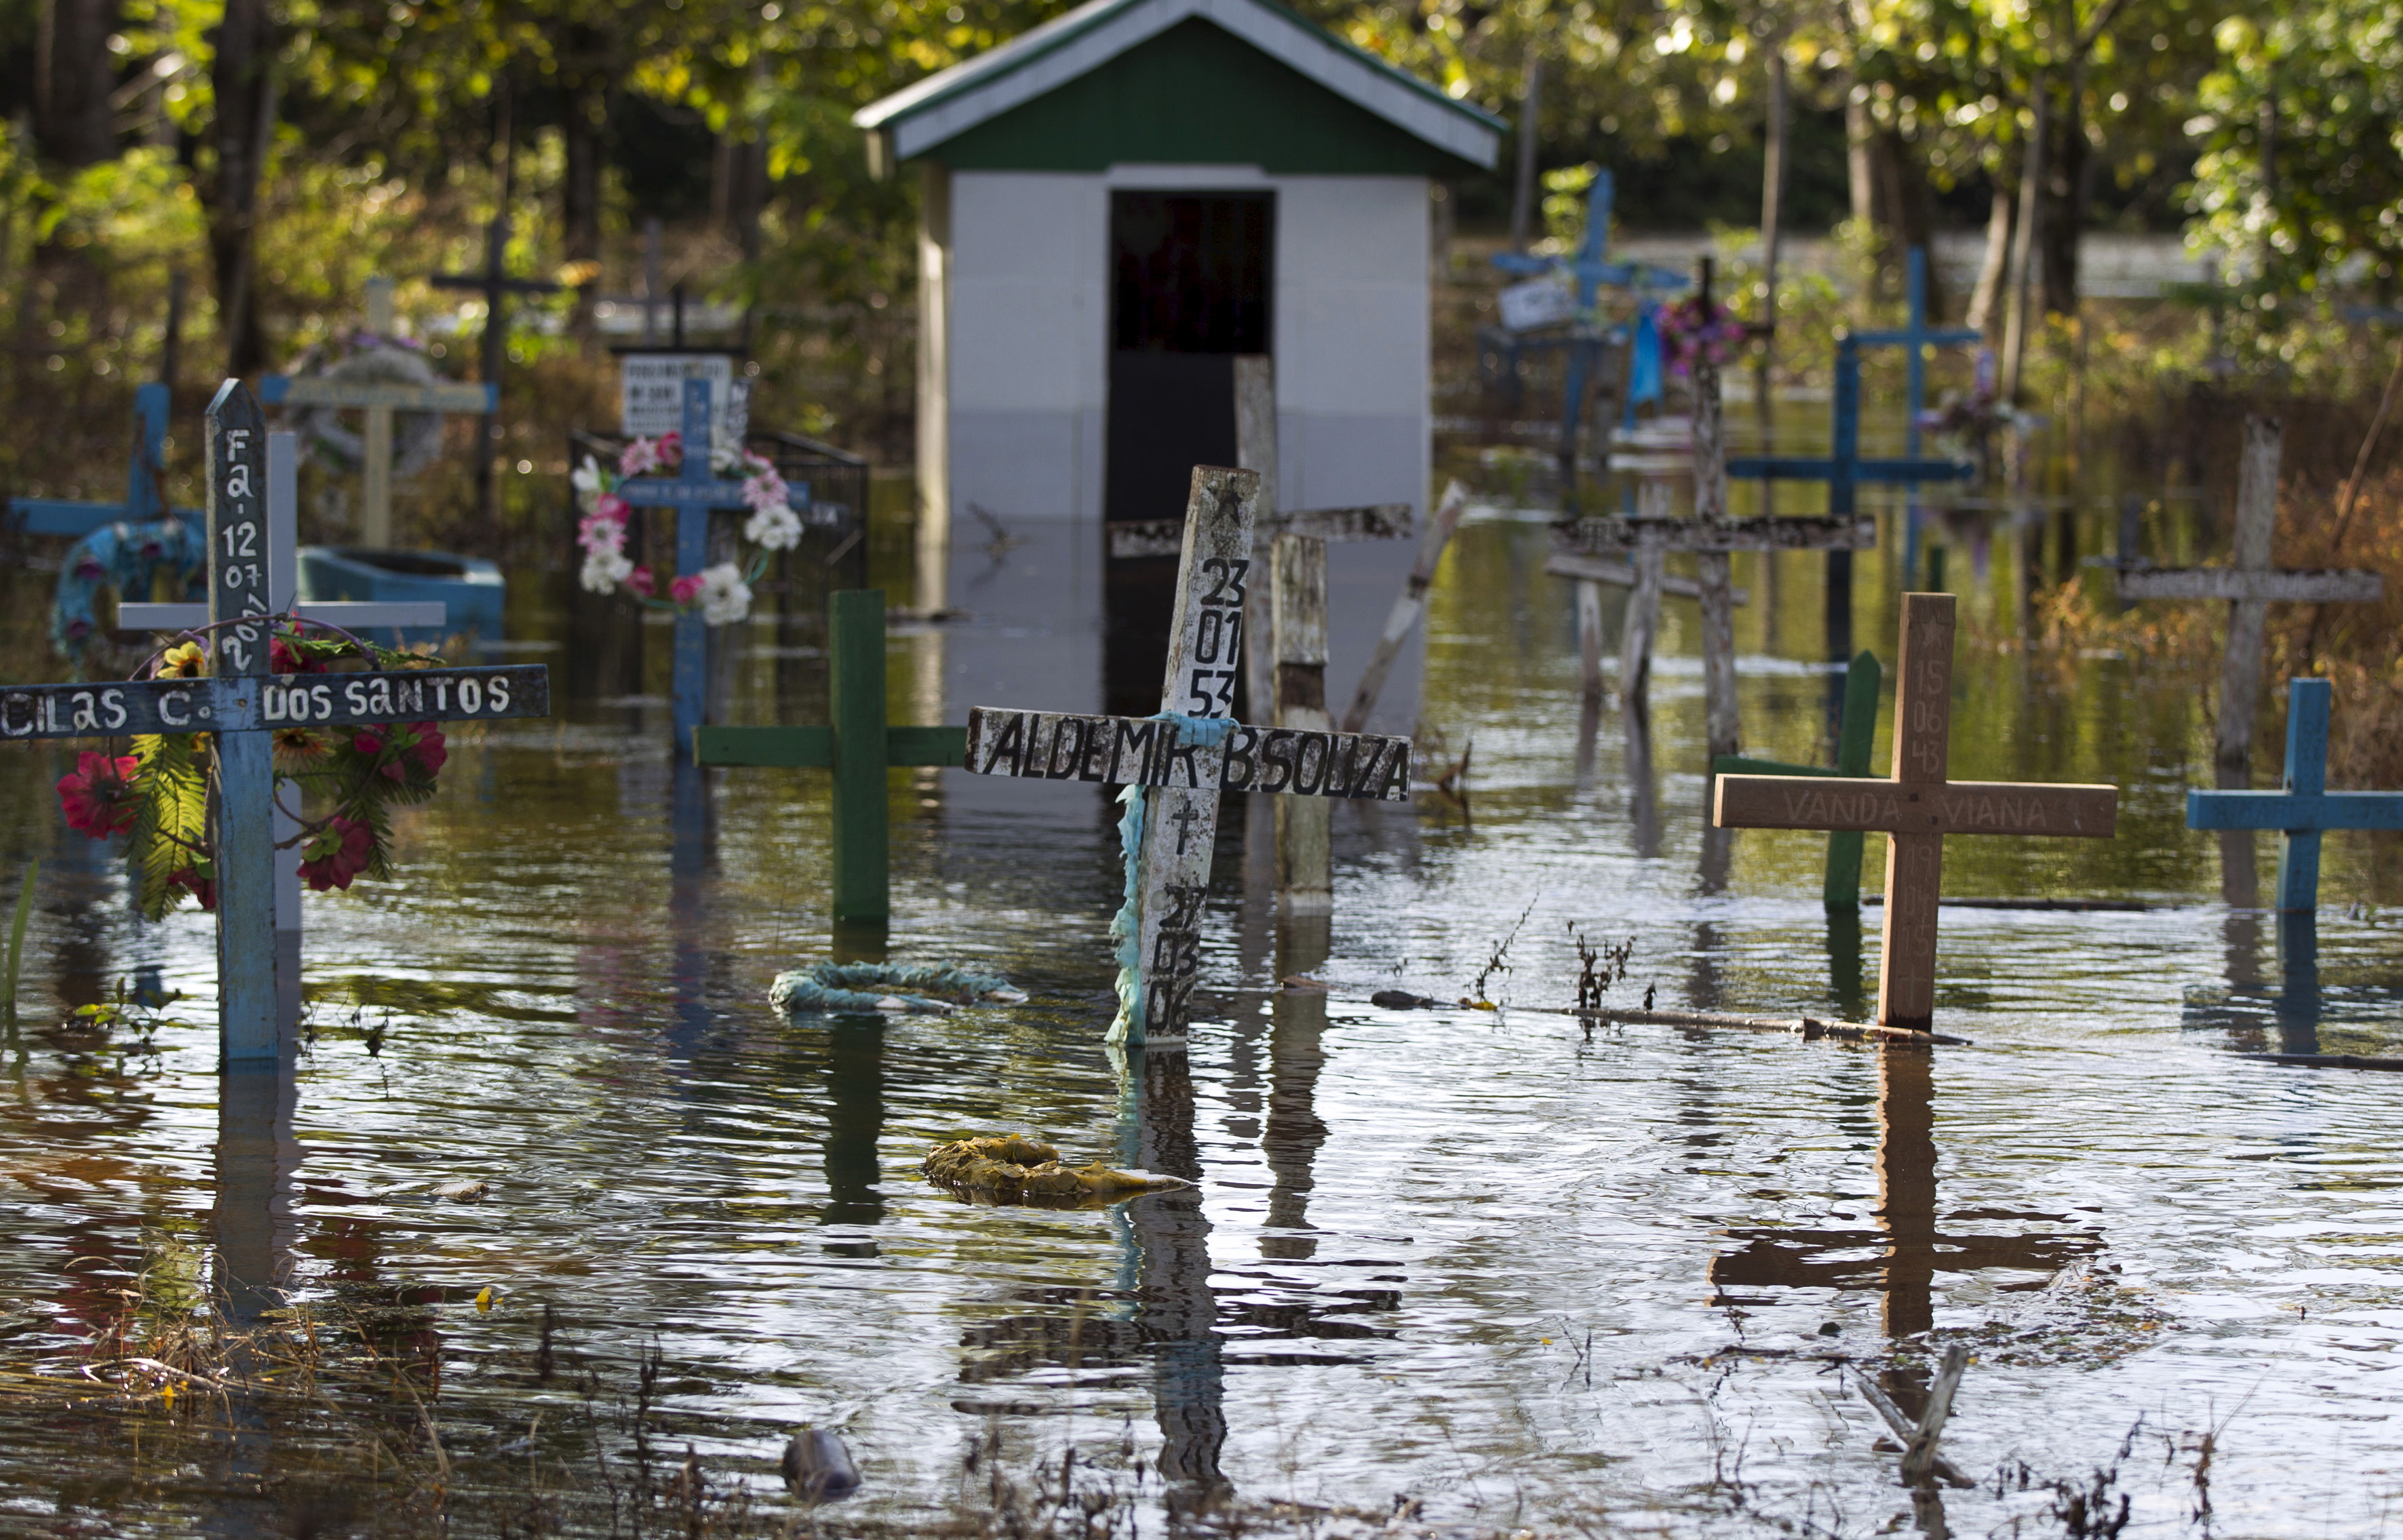 A cemetery is seen flooded by the rising Rio Solimoes, one of the two main branches of the Amazon River, in Anama, Amazonas state, Brazil on June 3, 2015. Photo by Bruno Kelly/Reuters